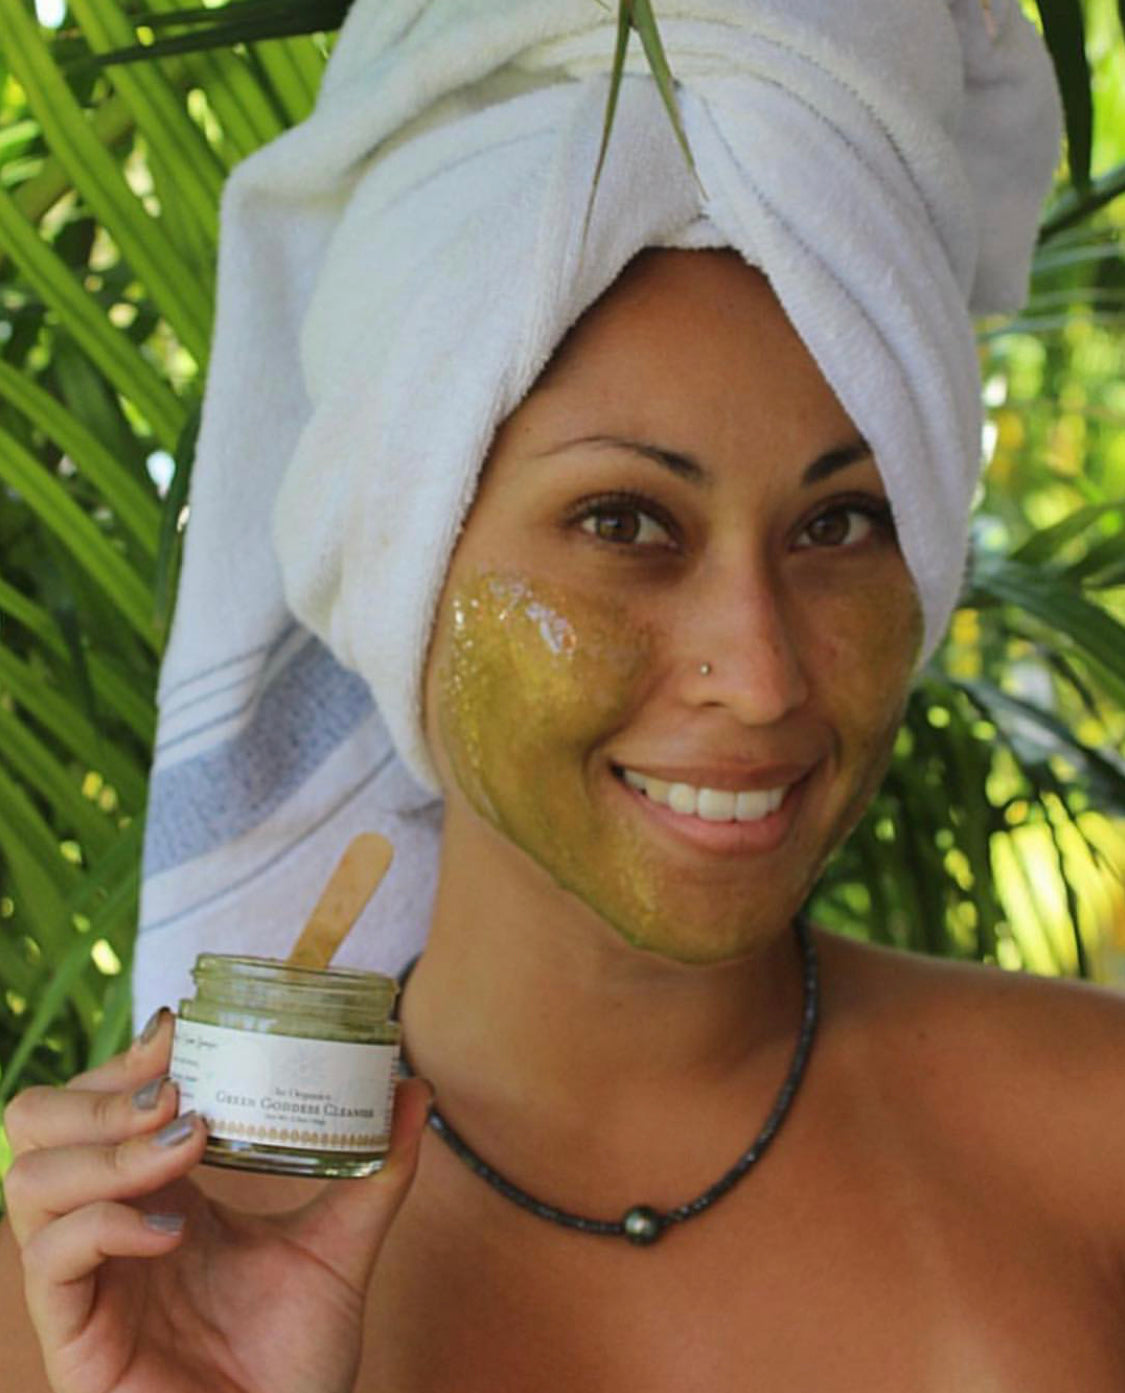 Green Goddess Cleanser